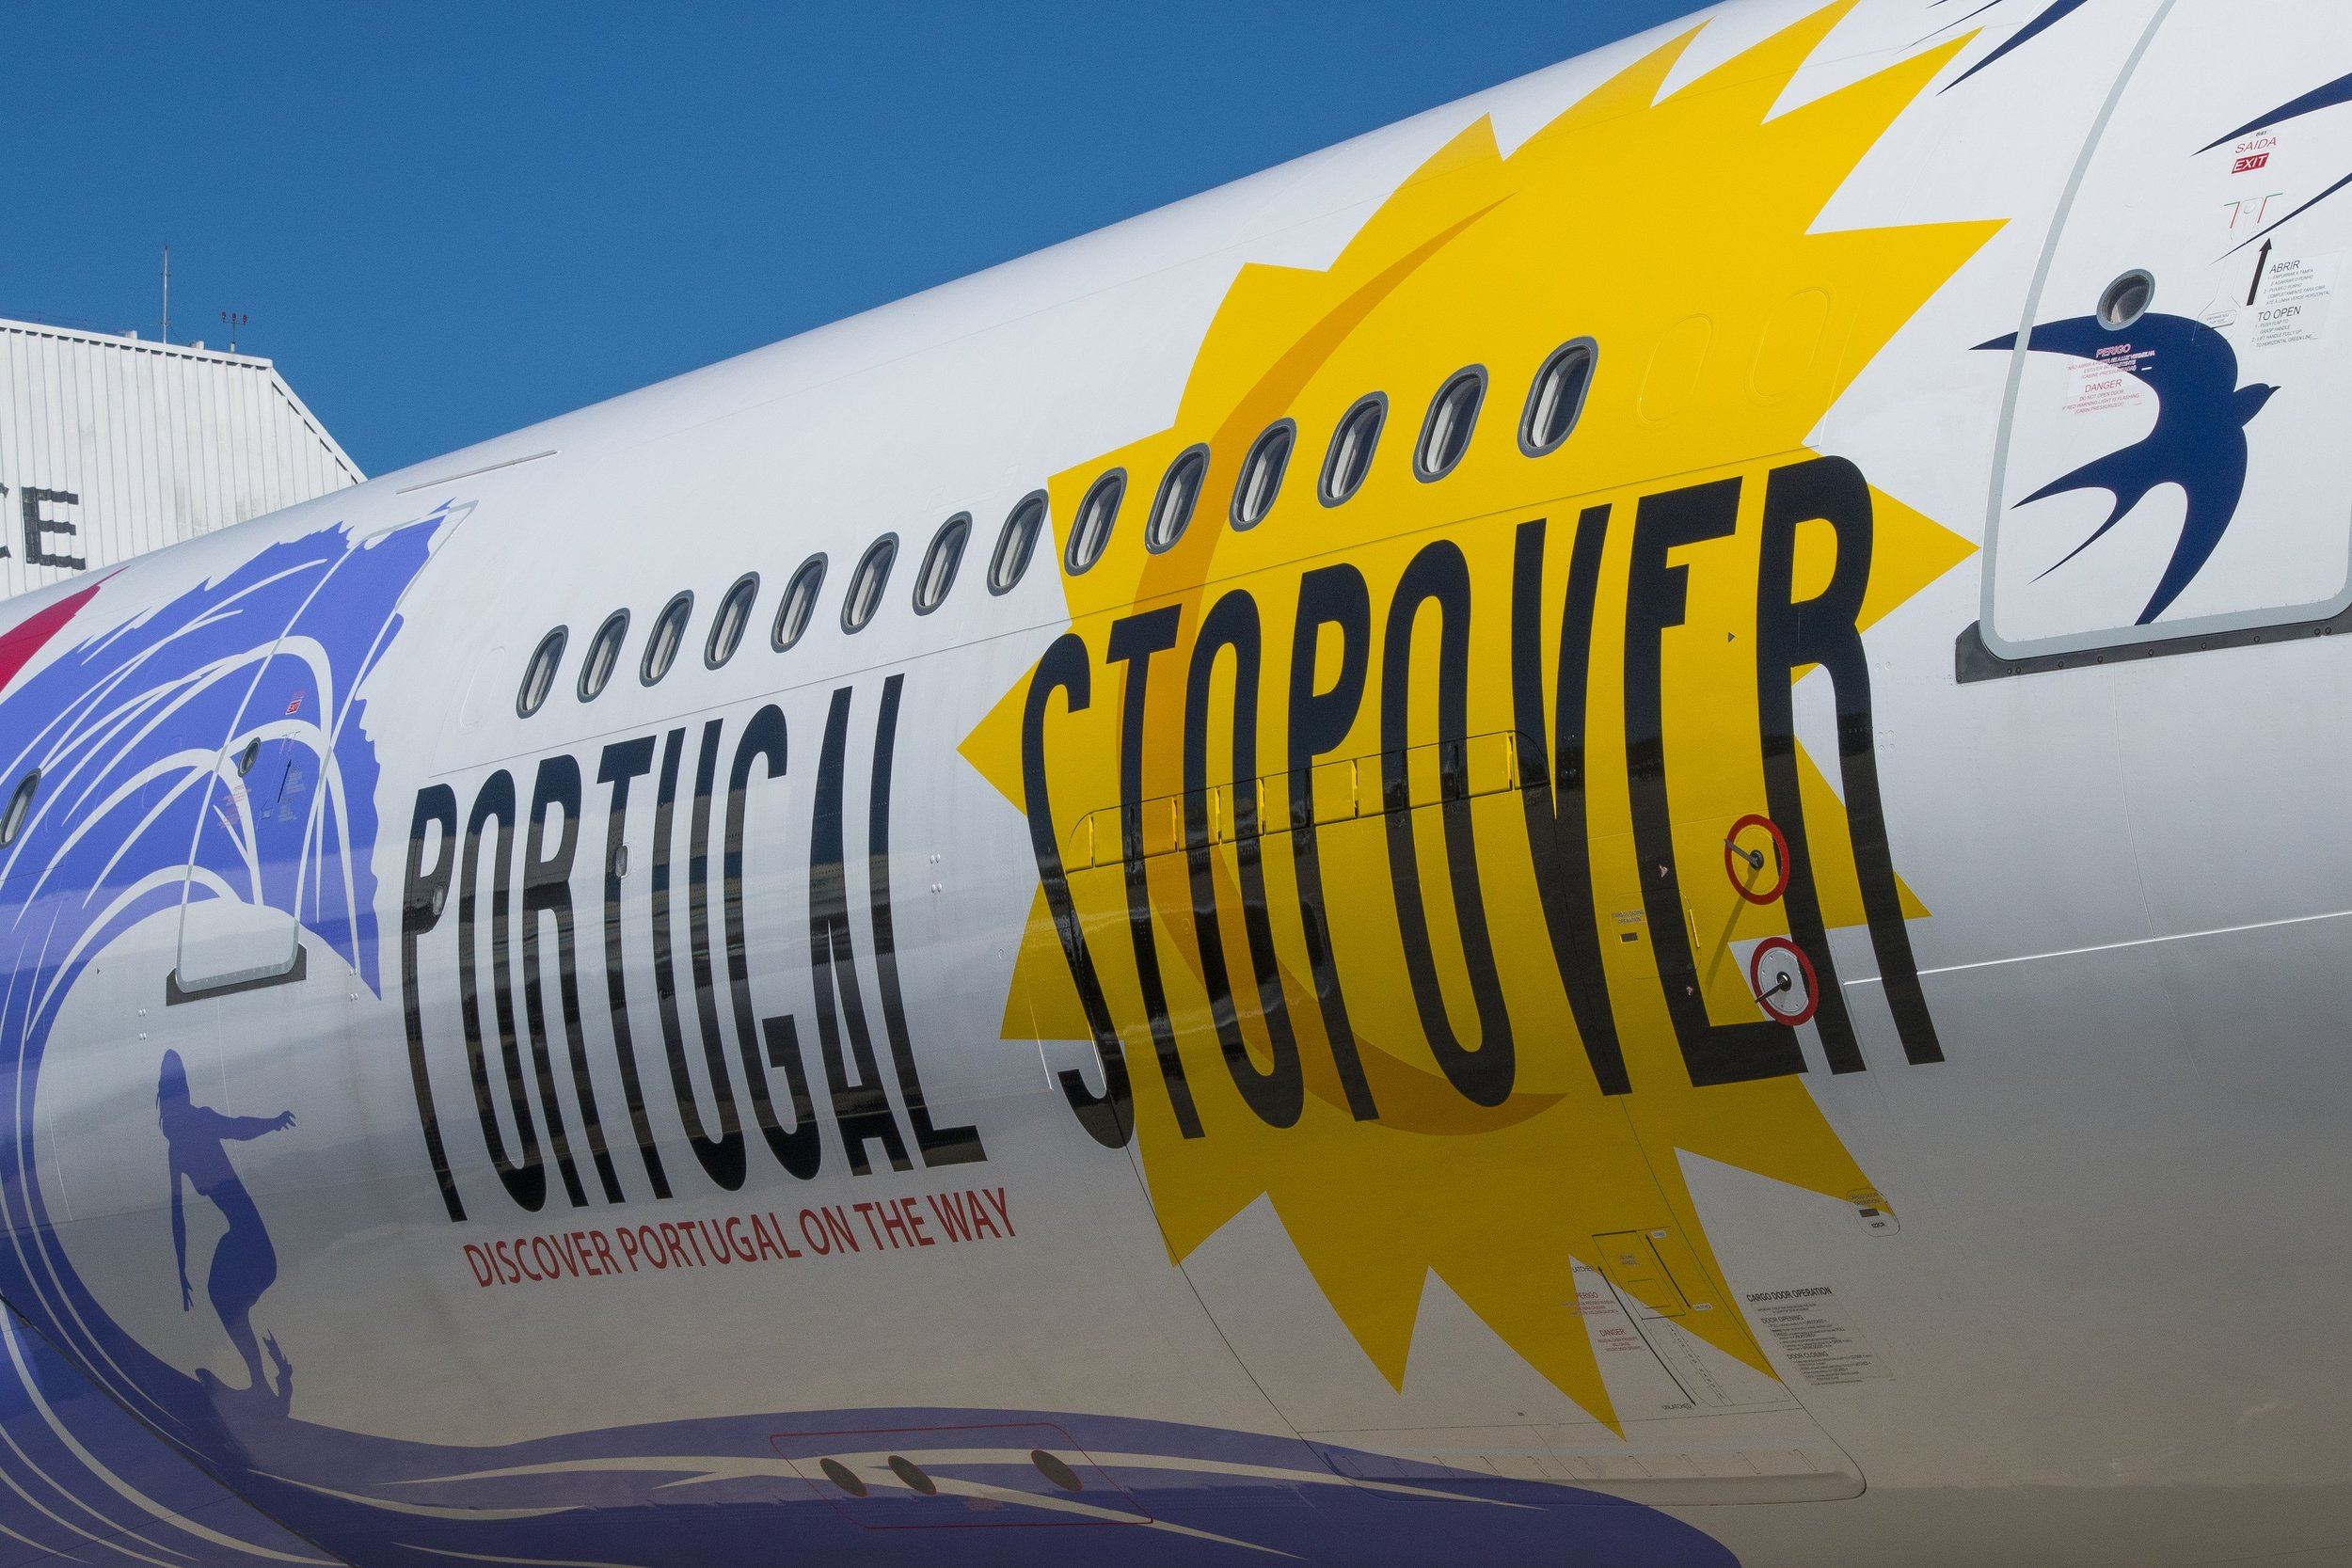 Portugal Stopover livery